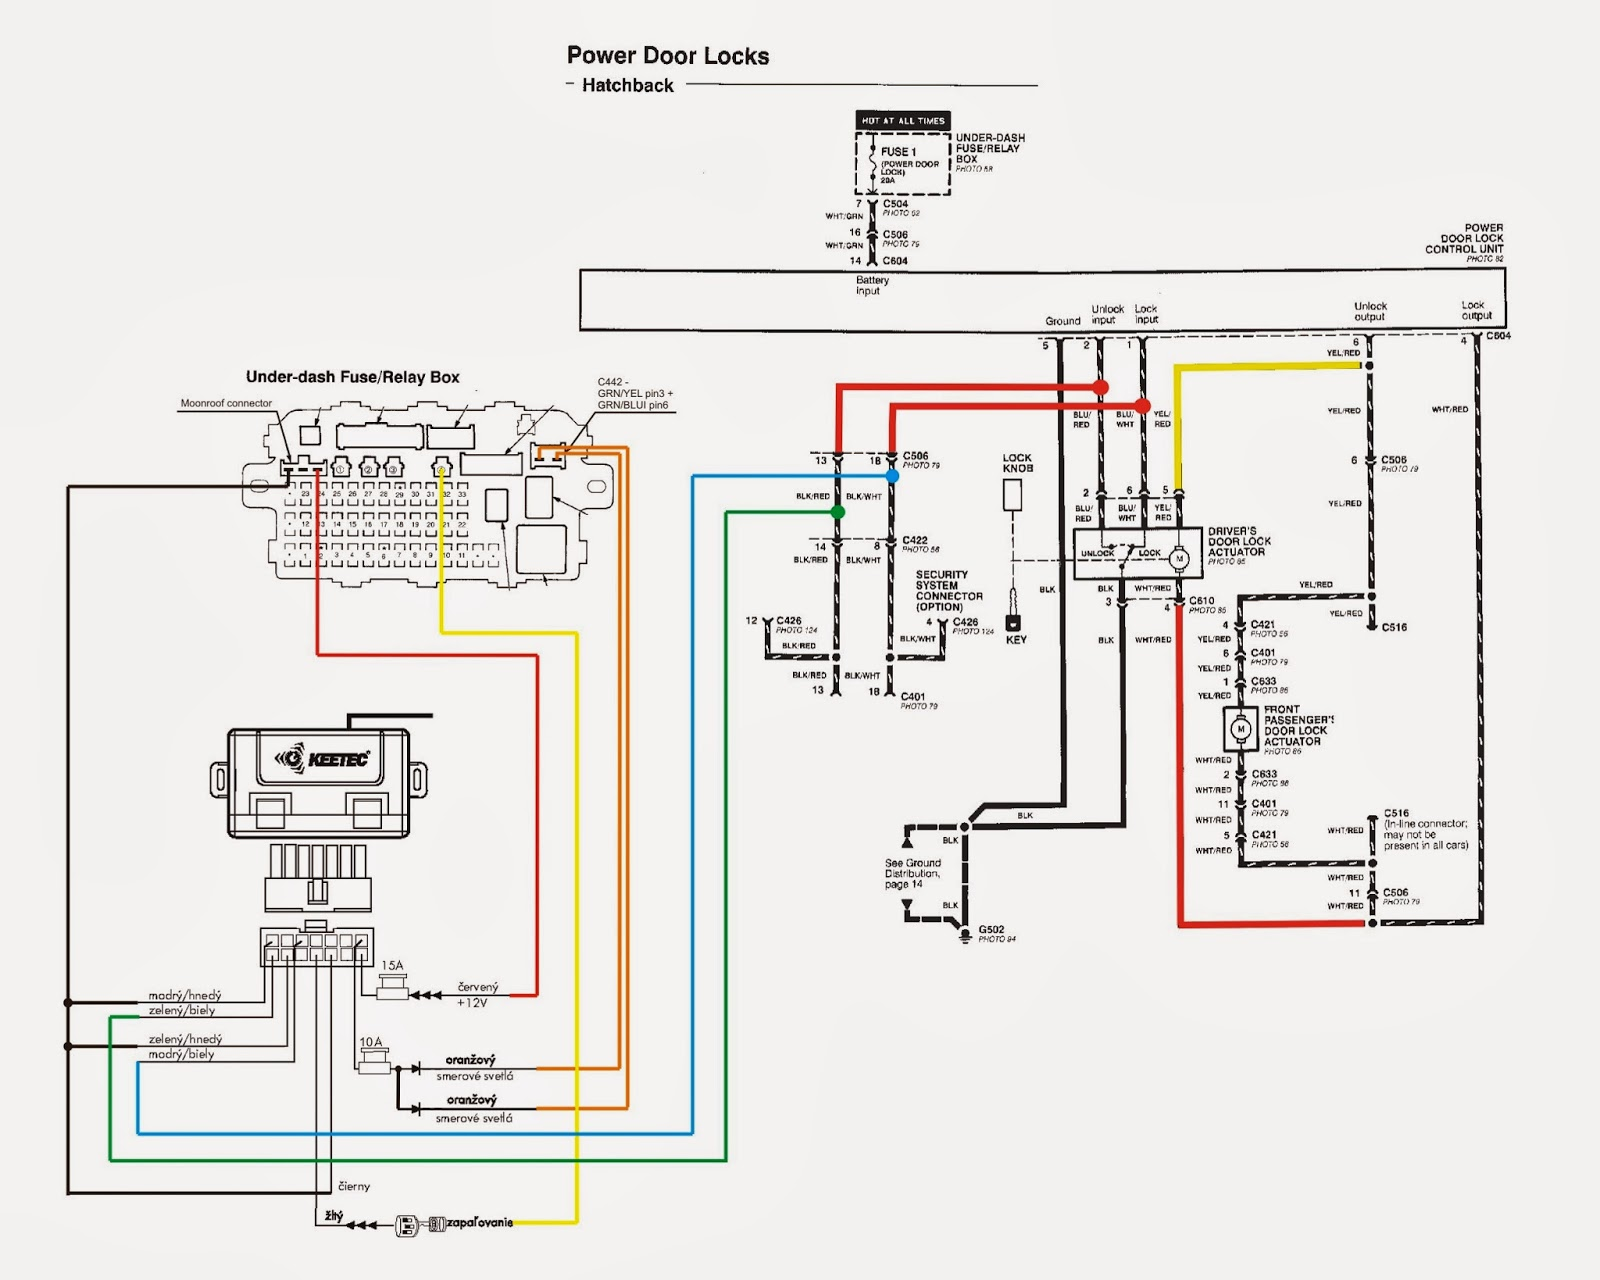 Acura Integra Door Lock Wiring Diagram Not Lossing Transmission Type R 1920 Project Blog Keyless Entry Mod In July 2011 Rh Itr1920 Blogspot Com 2003 1992